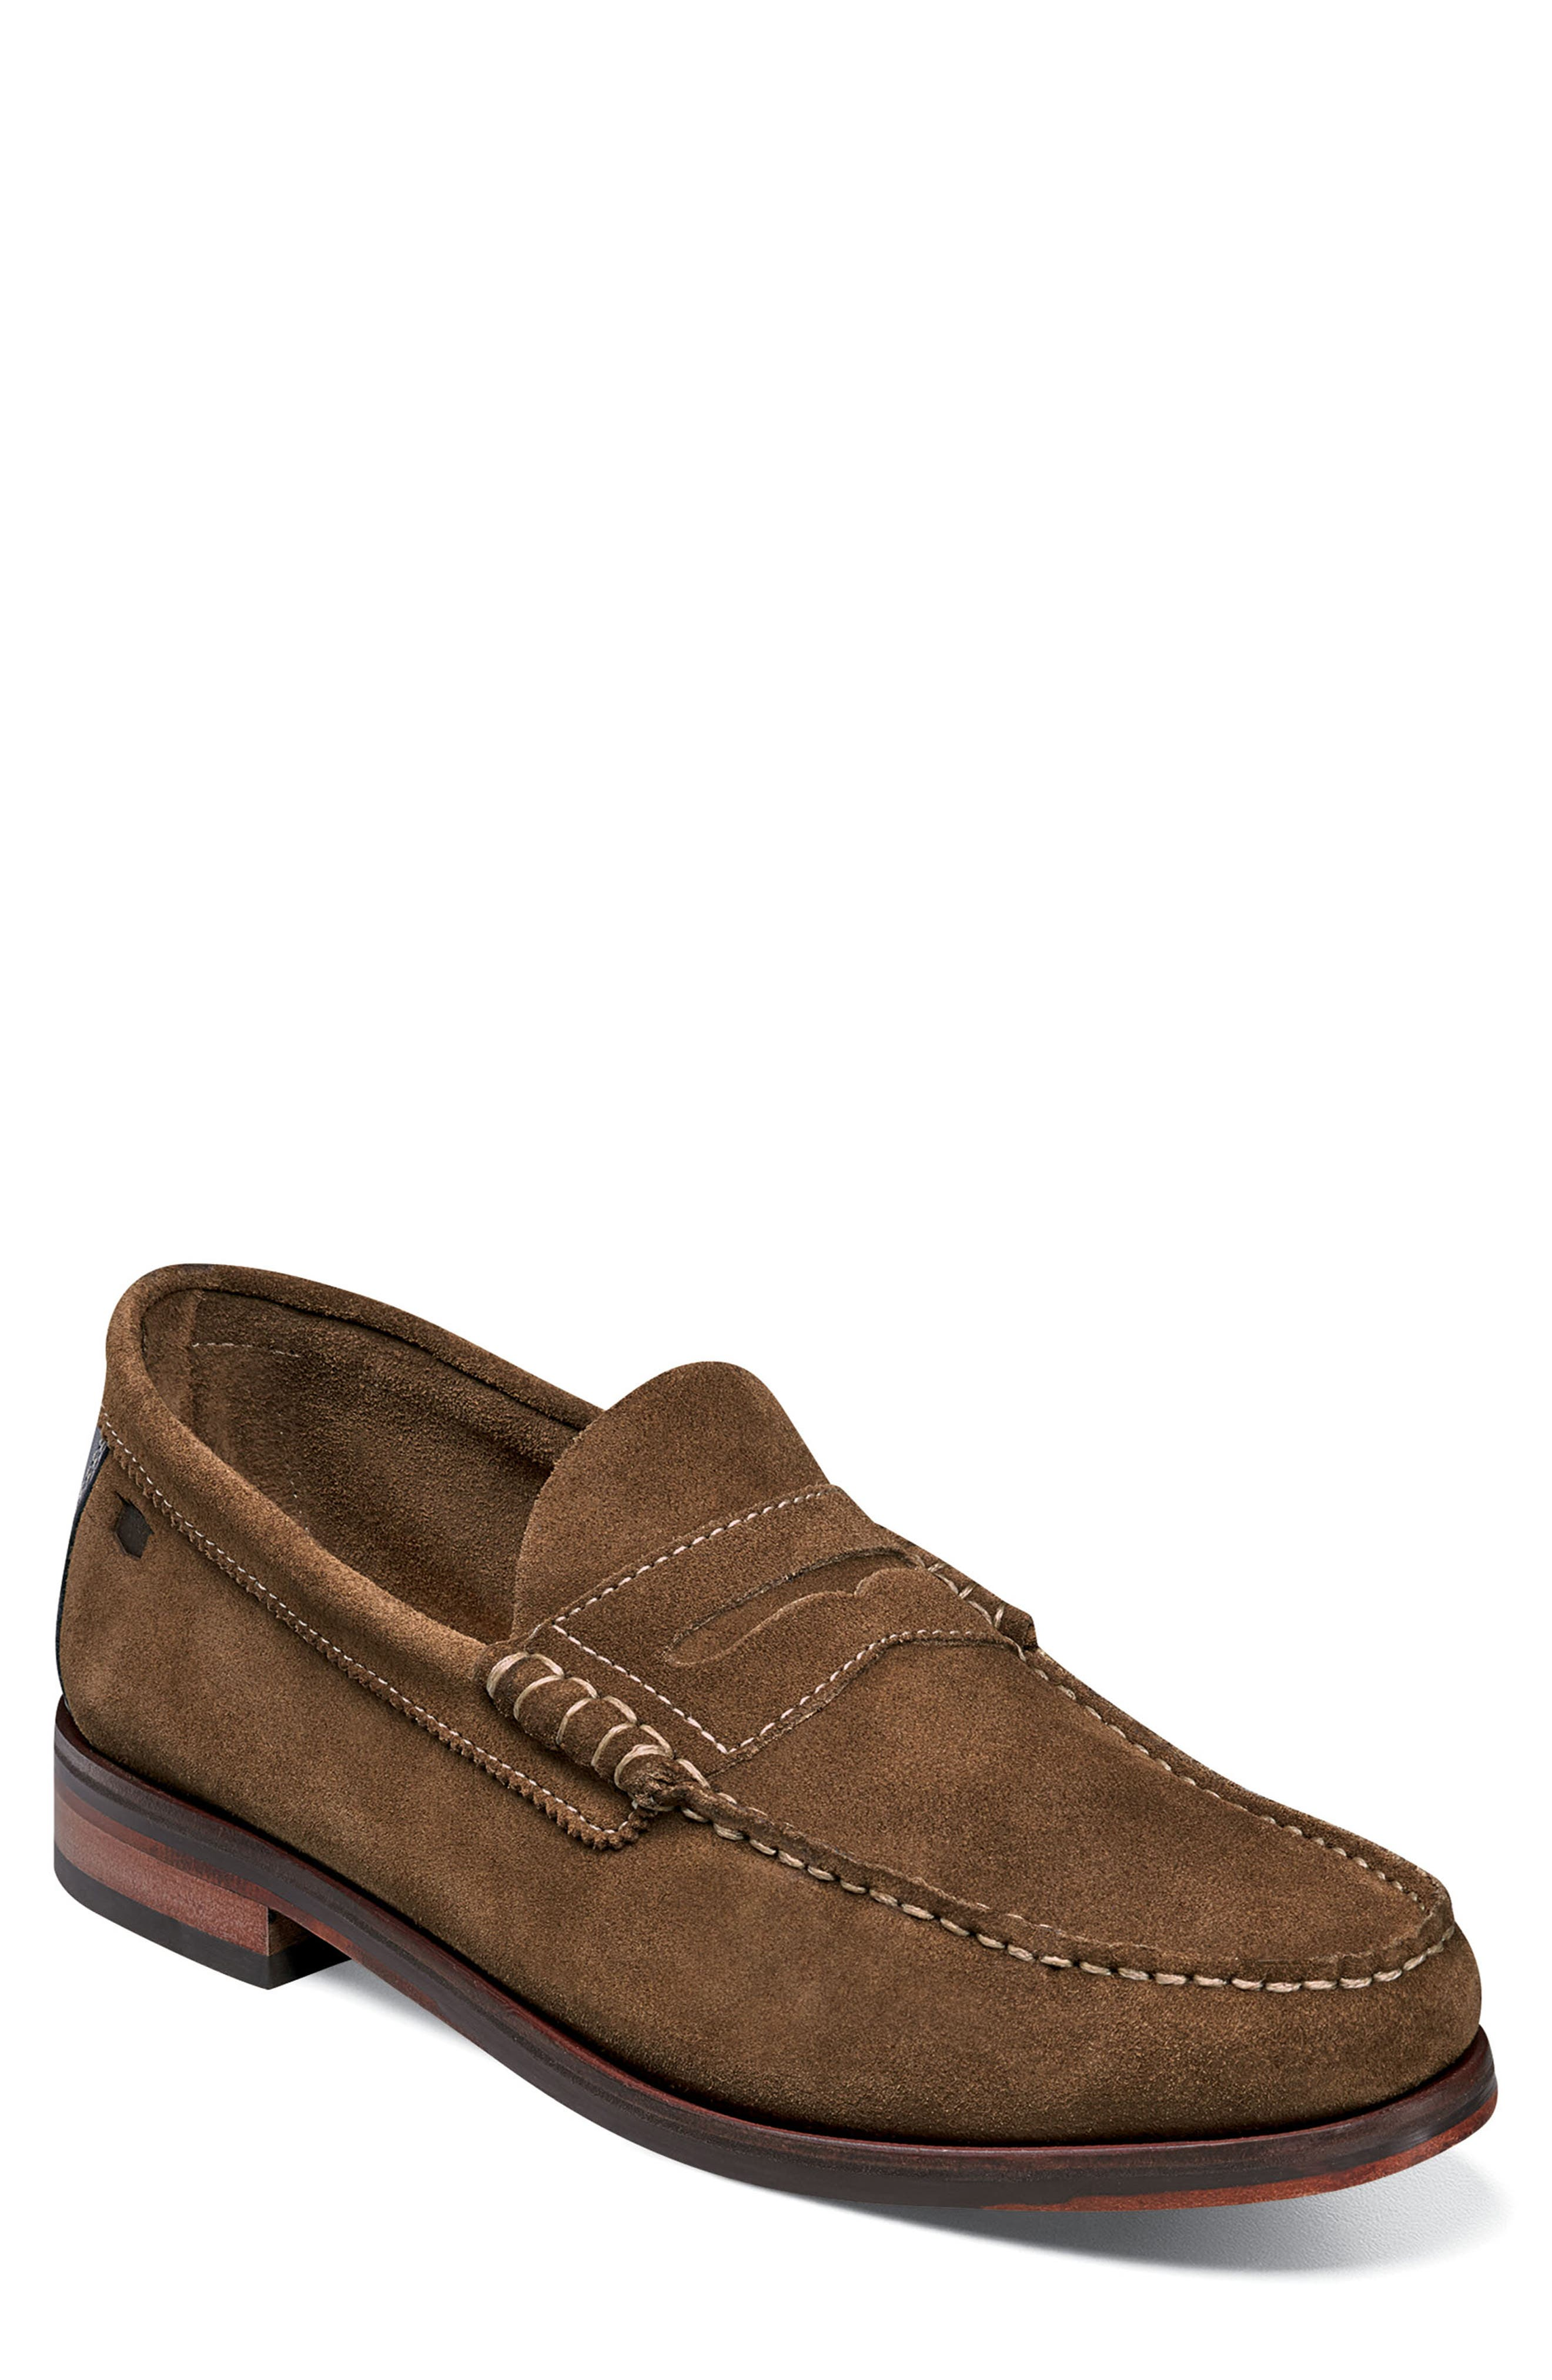 Heads-Up Penny Loafer,                         Main,                         color, SNUFF SUEDE